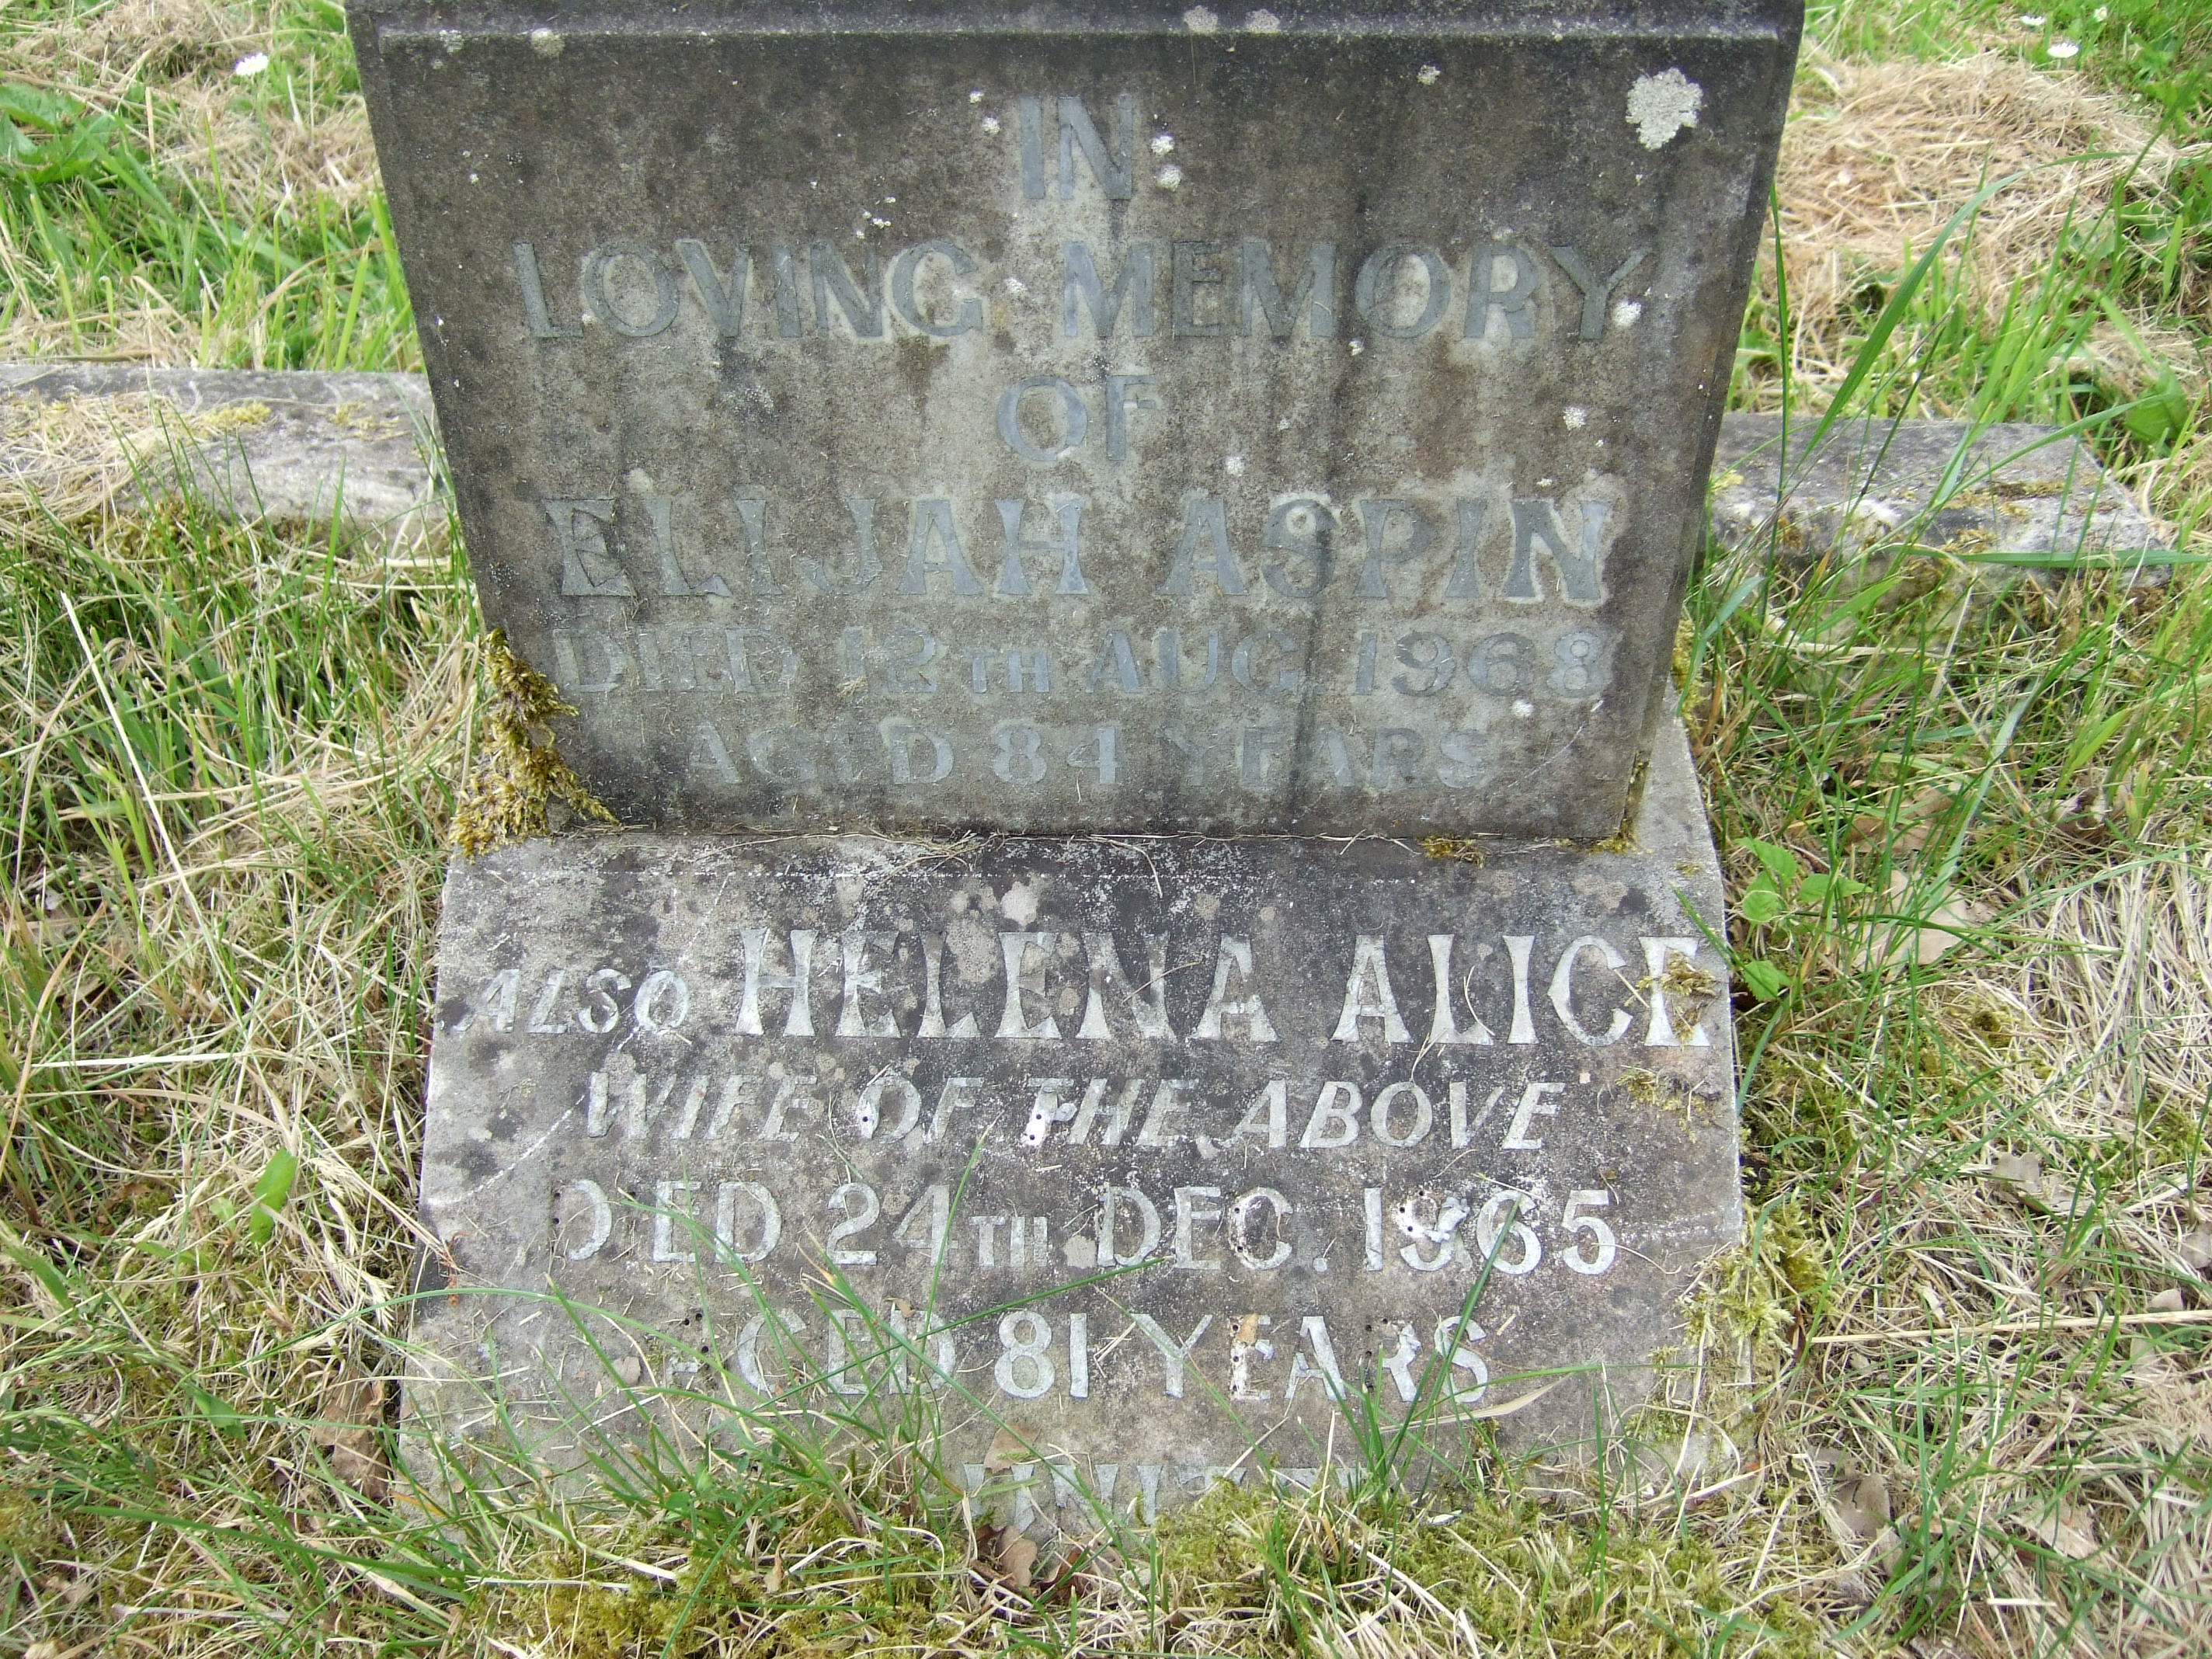 Alice Kenyon